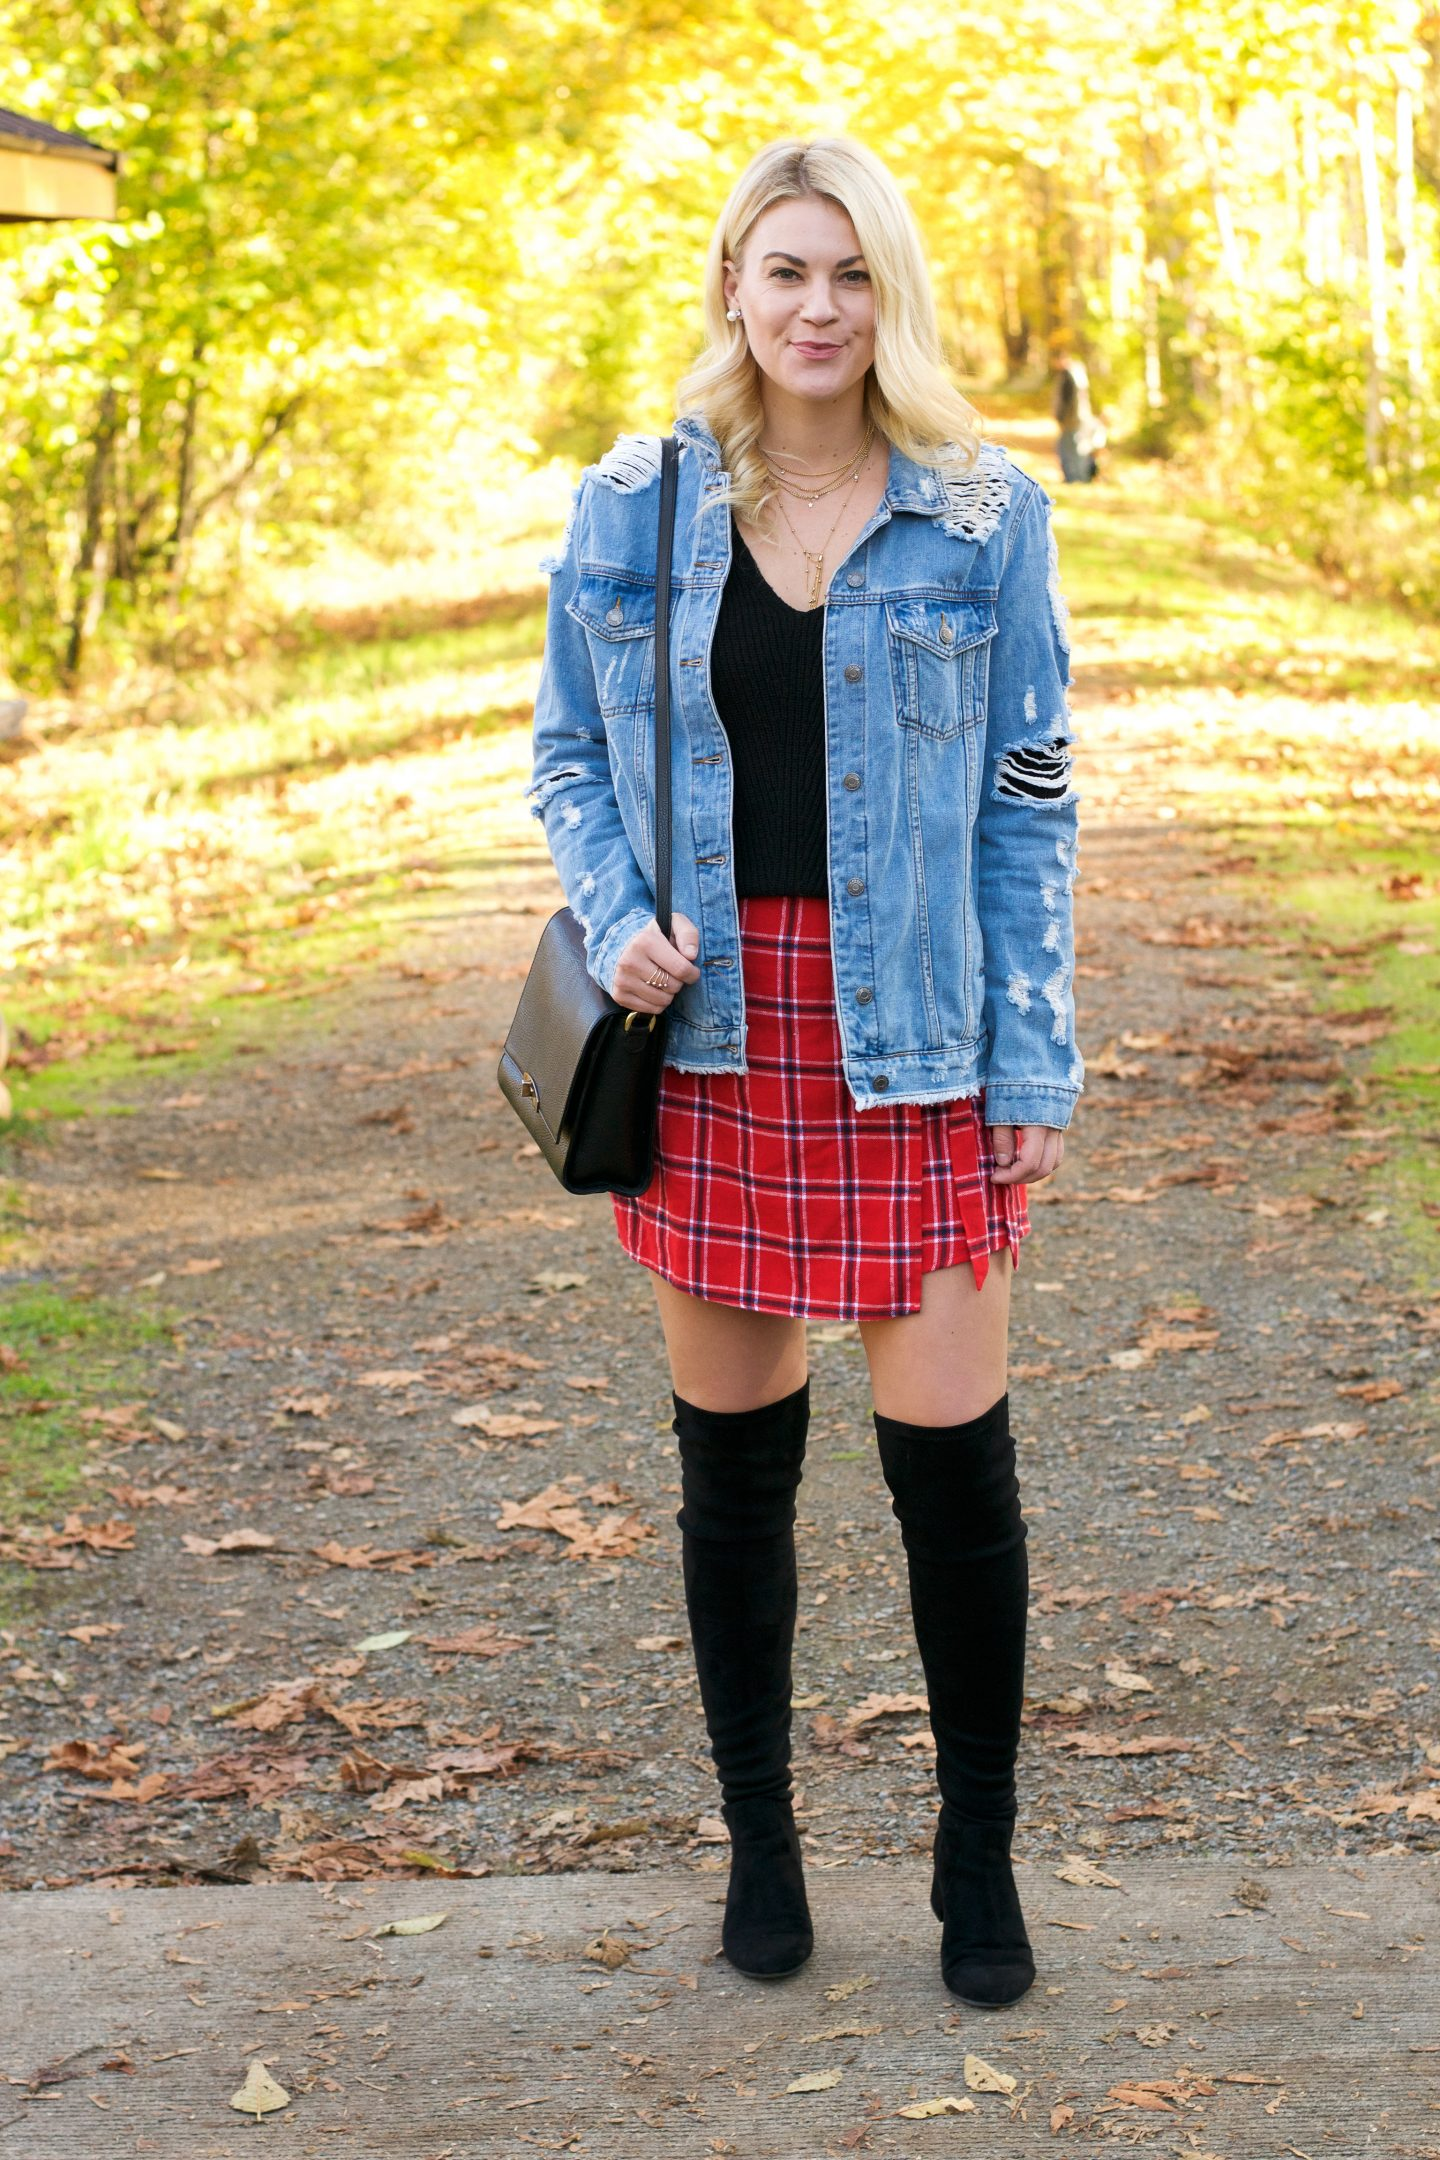 Oversized Jacket by popular Seattle tall fashion blog, Whit Wanders: image of a woman wearing a Nasty Gal Rough and Ready Distressed Denim Jacket, plaid skirt, and over the knee boots.